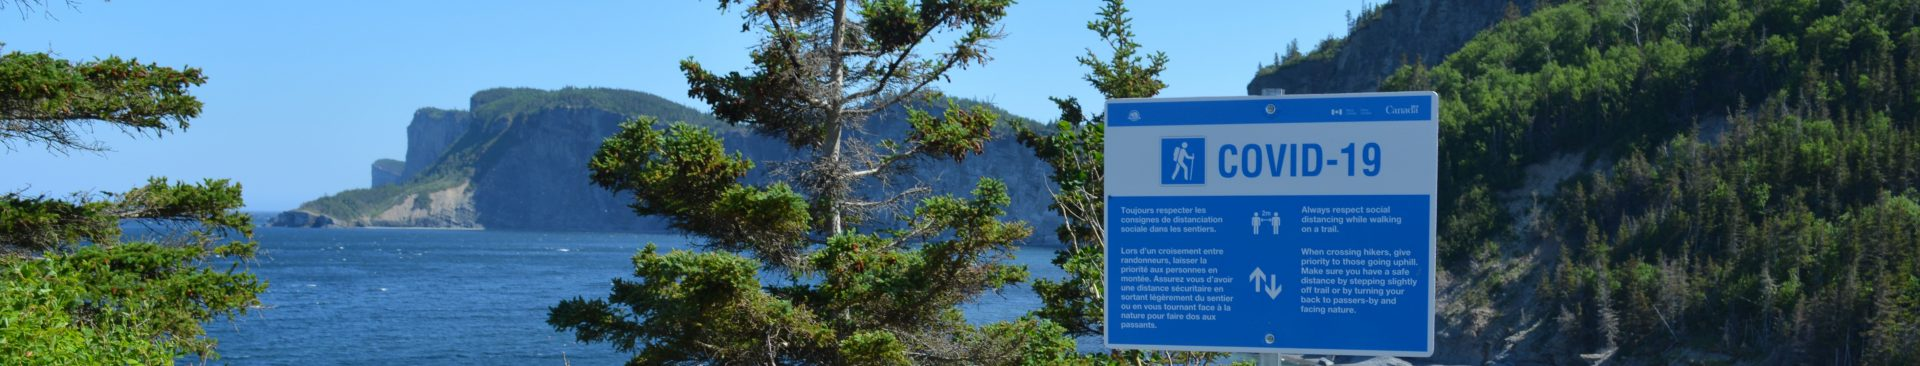 What is open and closed in Forillon National Park?